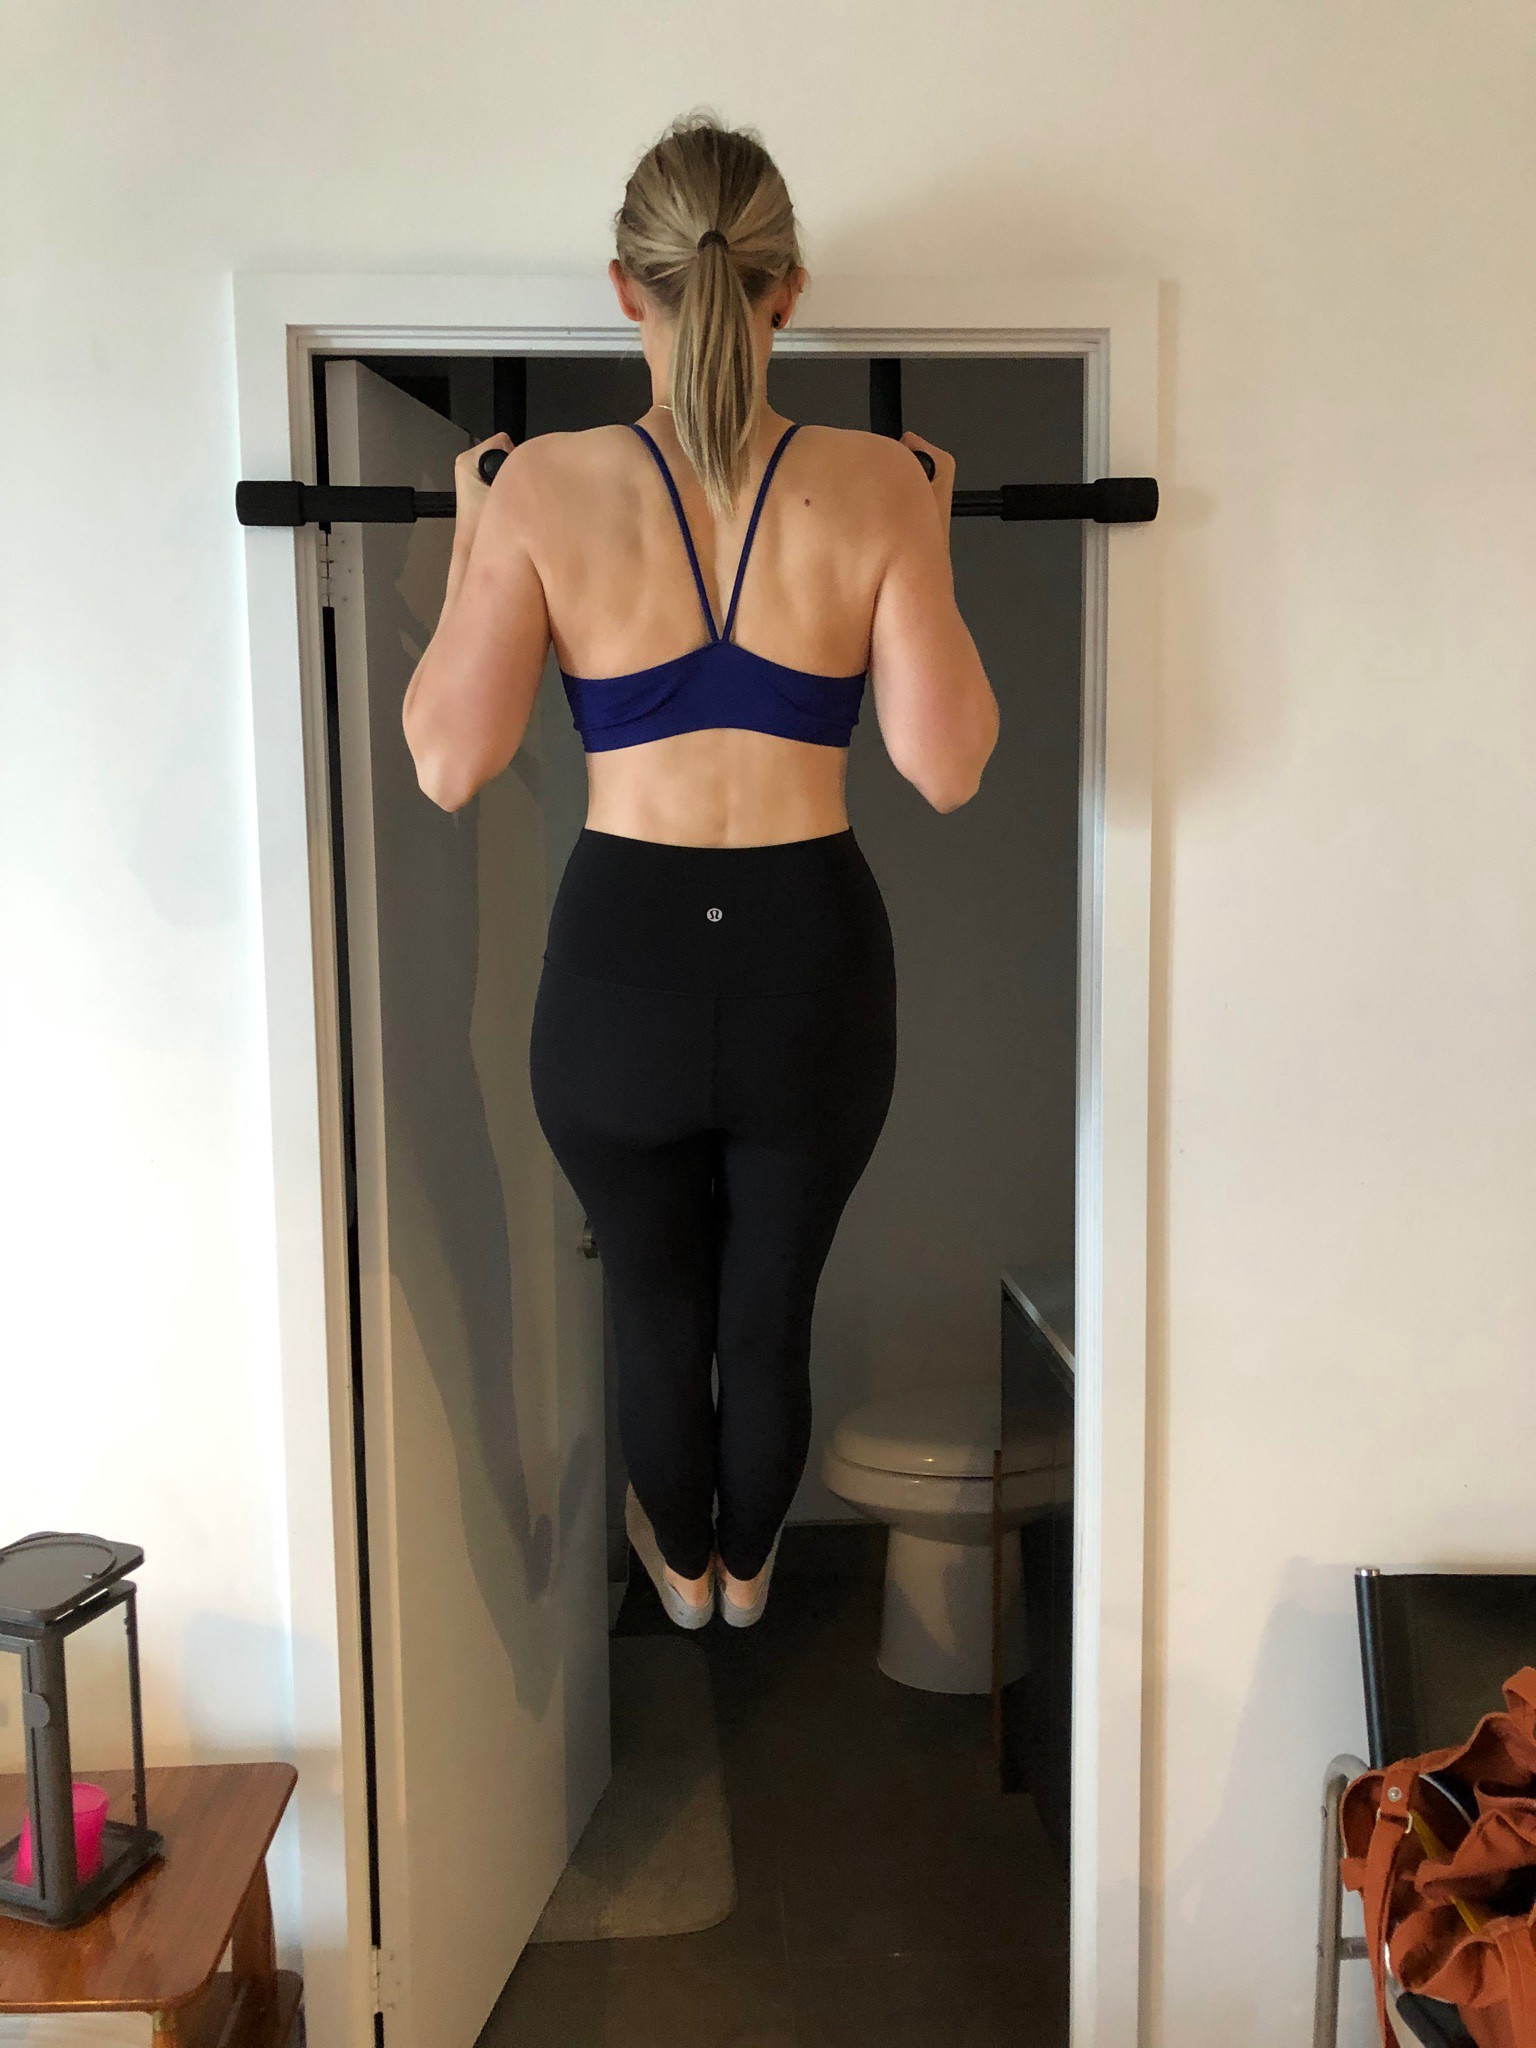 Linn doing a neutral grip flexed arm hang on a chin up bar in a door frame. She is wearing black leggings and purple sports bra.